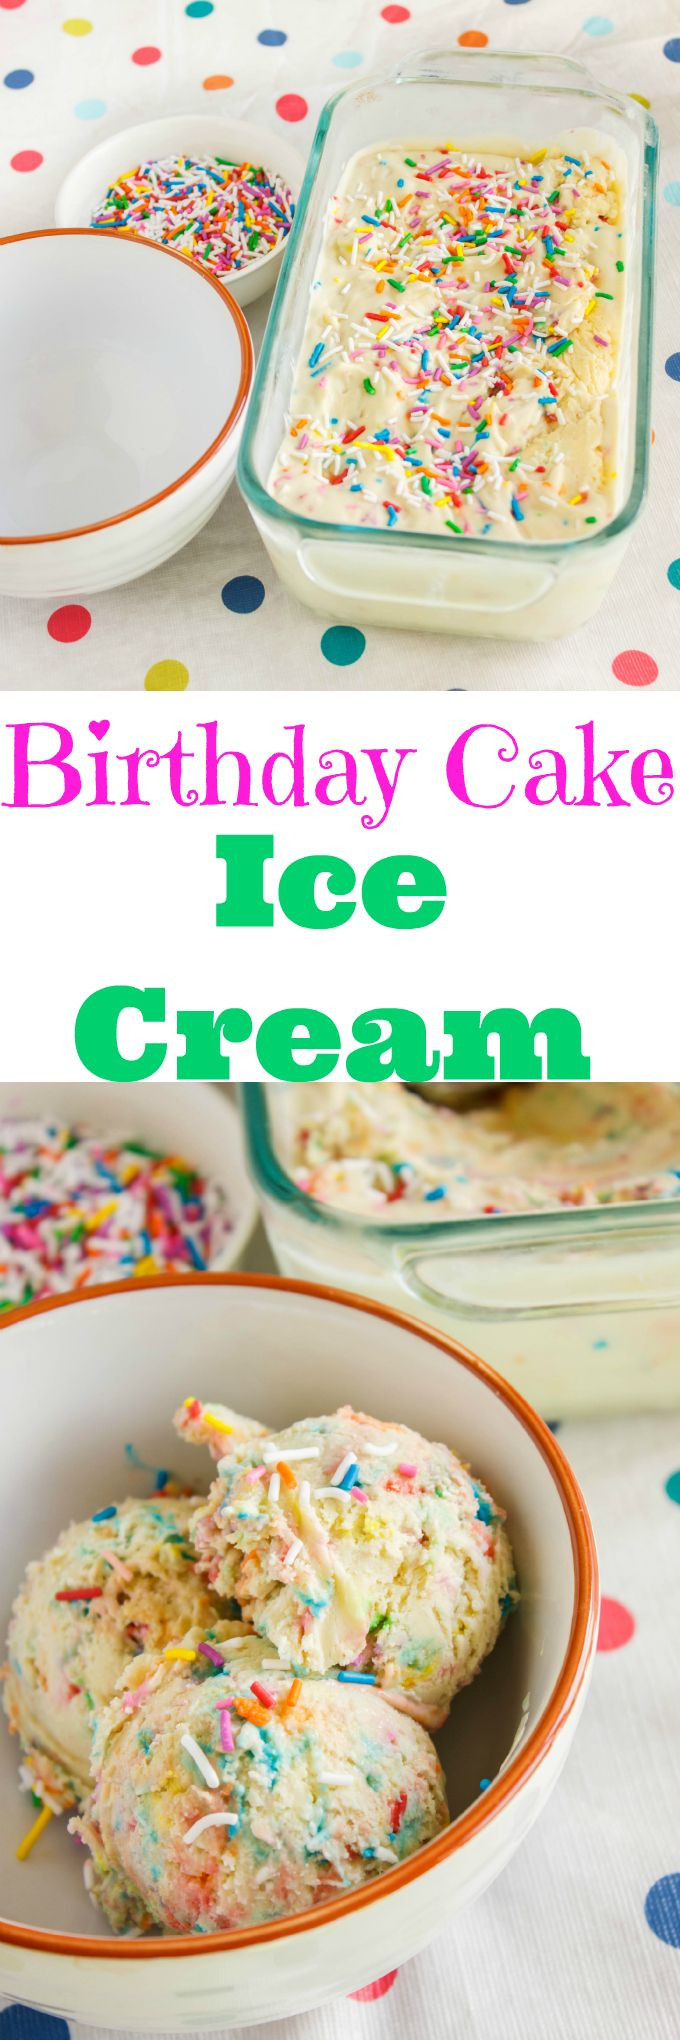 Best ideas about Birthday Cake Flavor . Save or Pin Best 25 Birthday Cake Flavors ideas that you will like on Now.